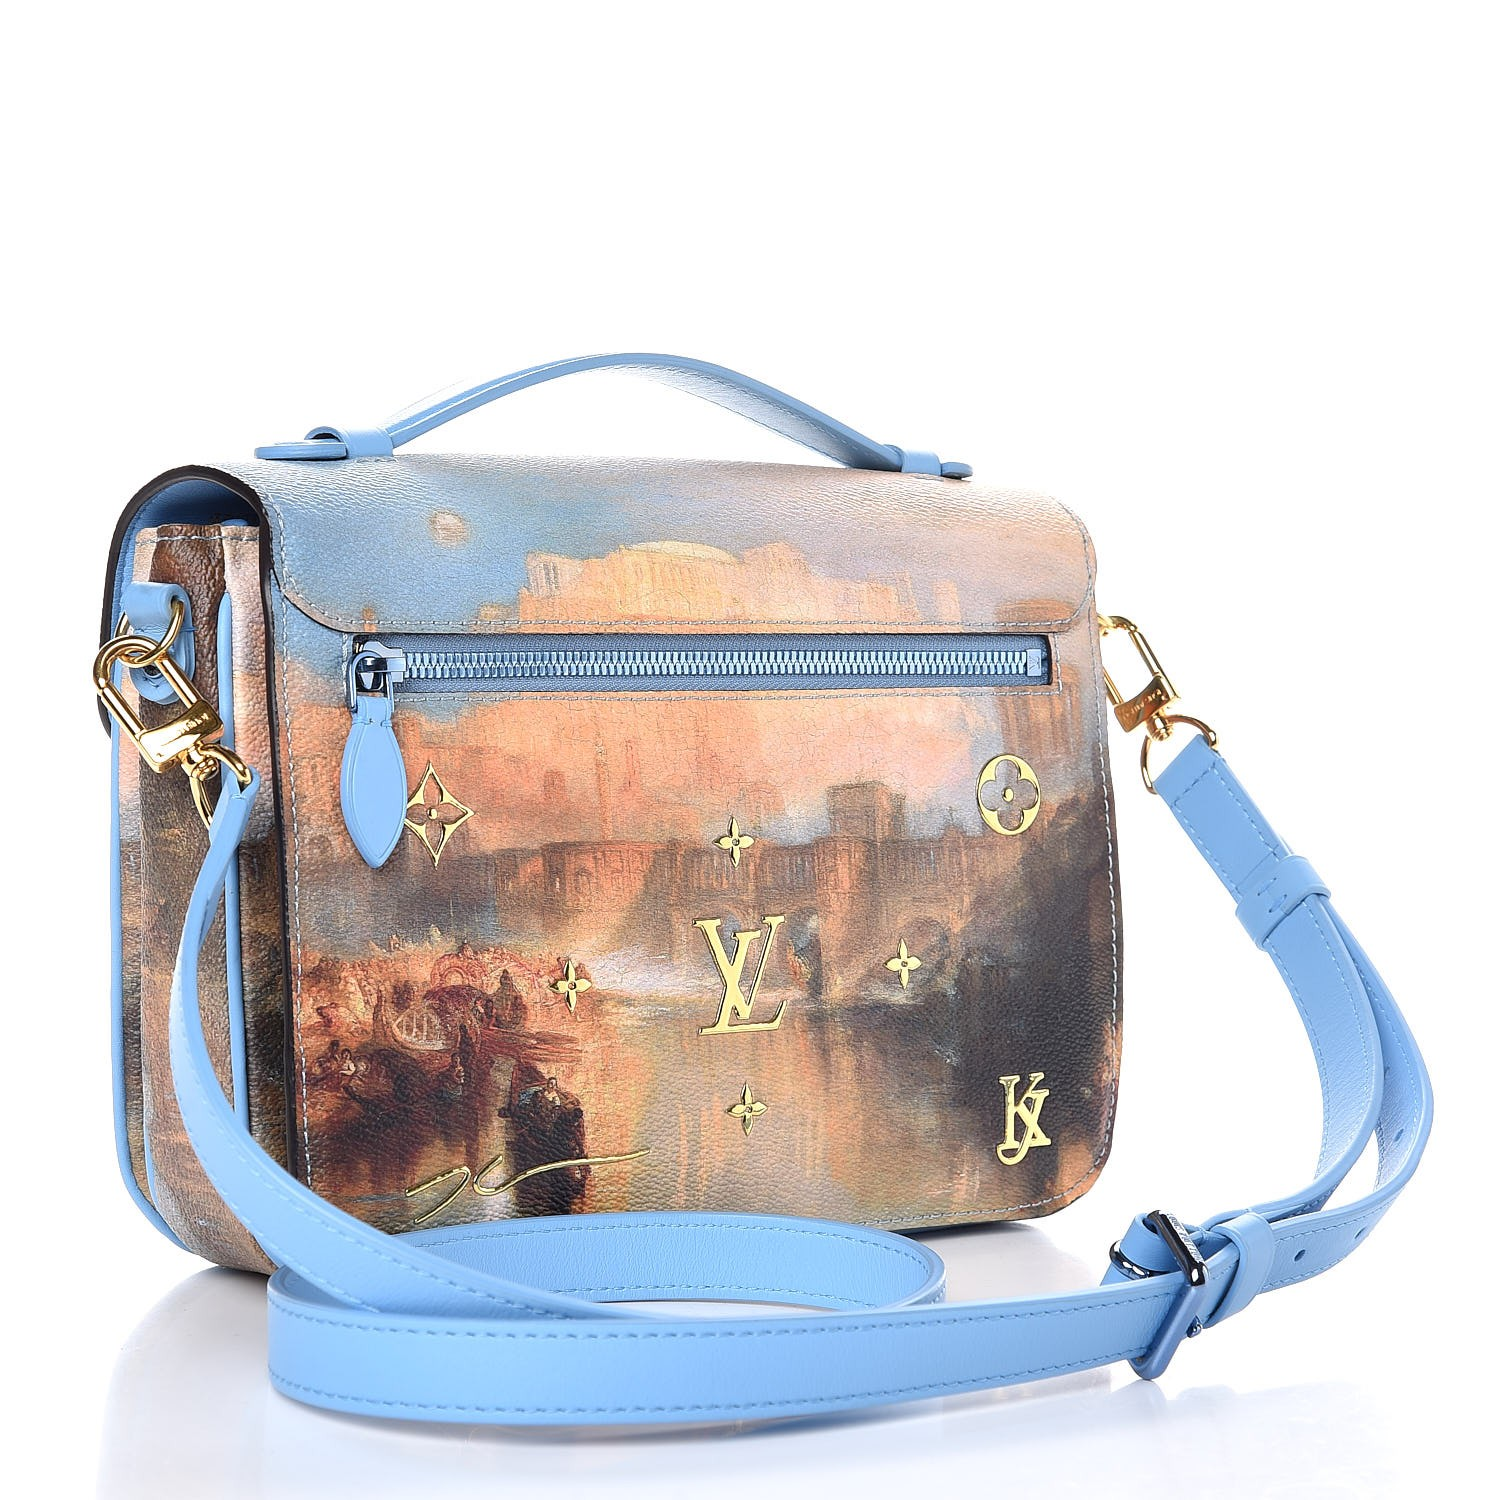 3d0189b8d9b0 LOUIS VUITTON Masters Jeff Koons Turner Pochette Metis. Empty. Pinch Zoom